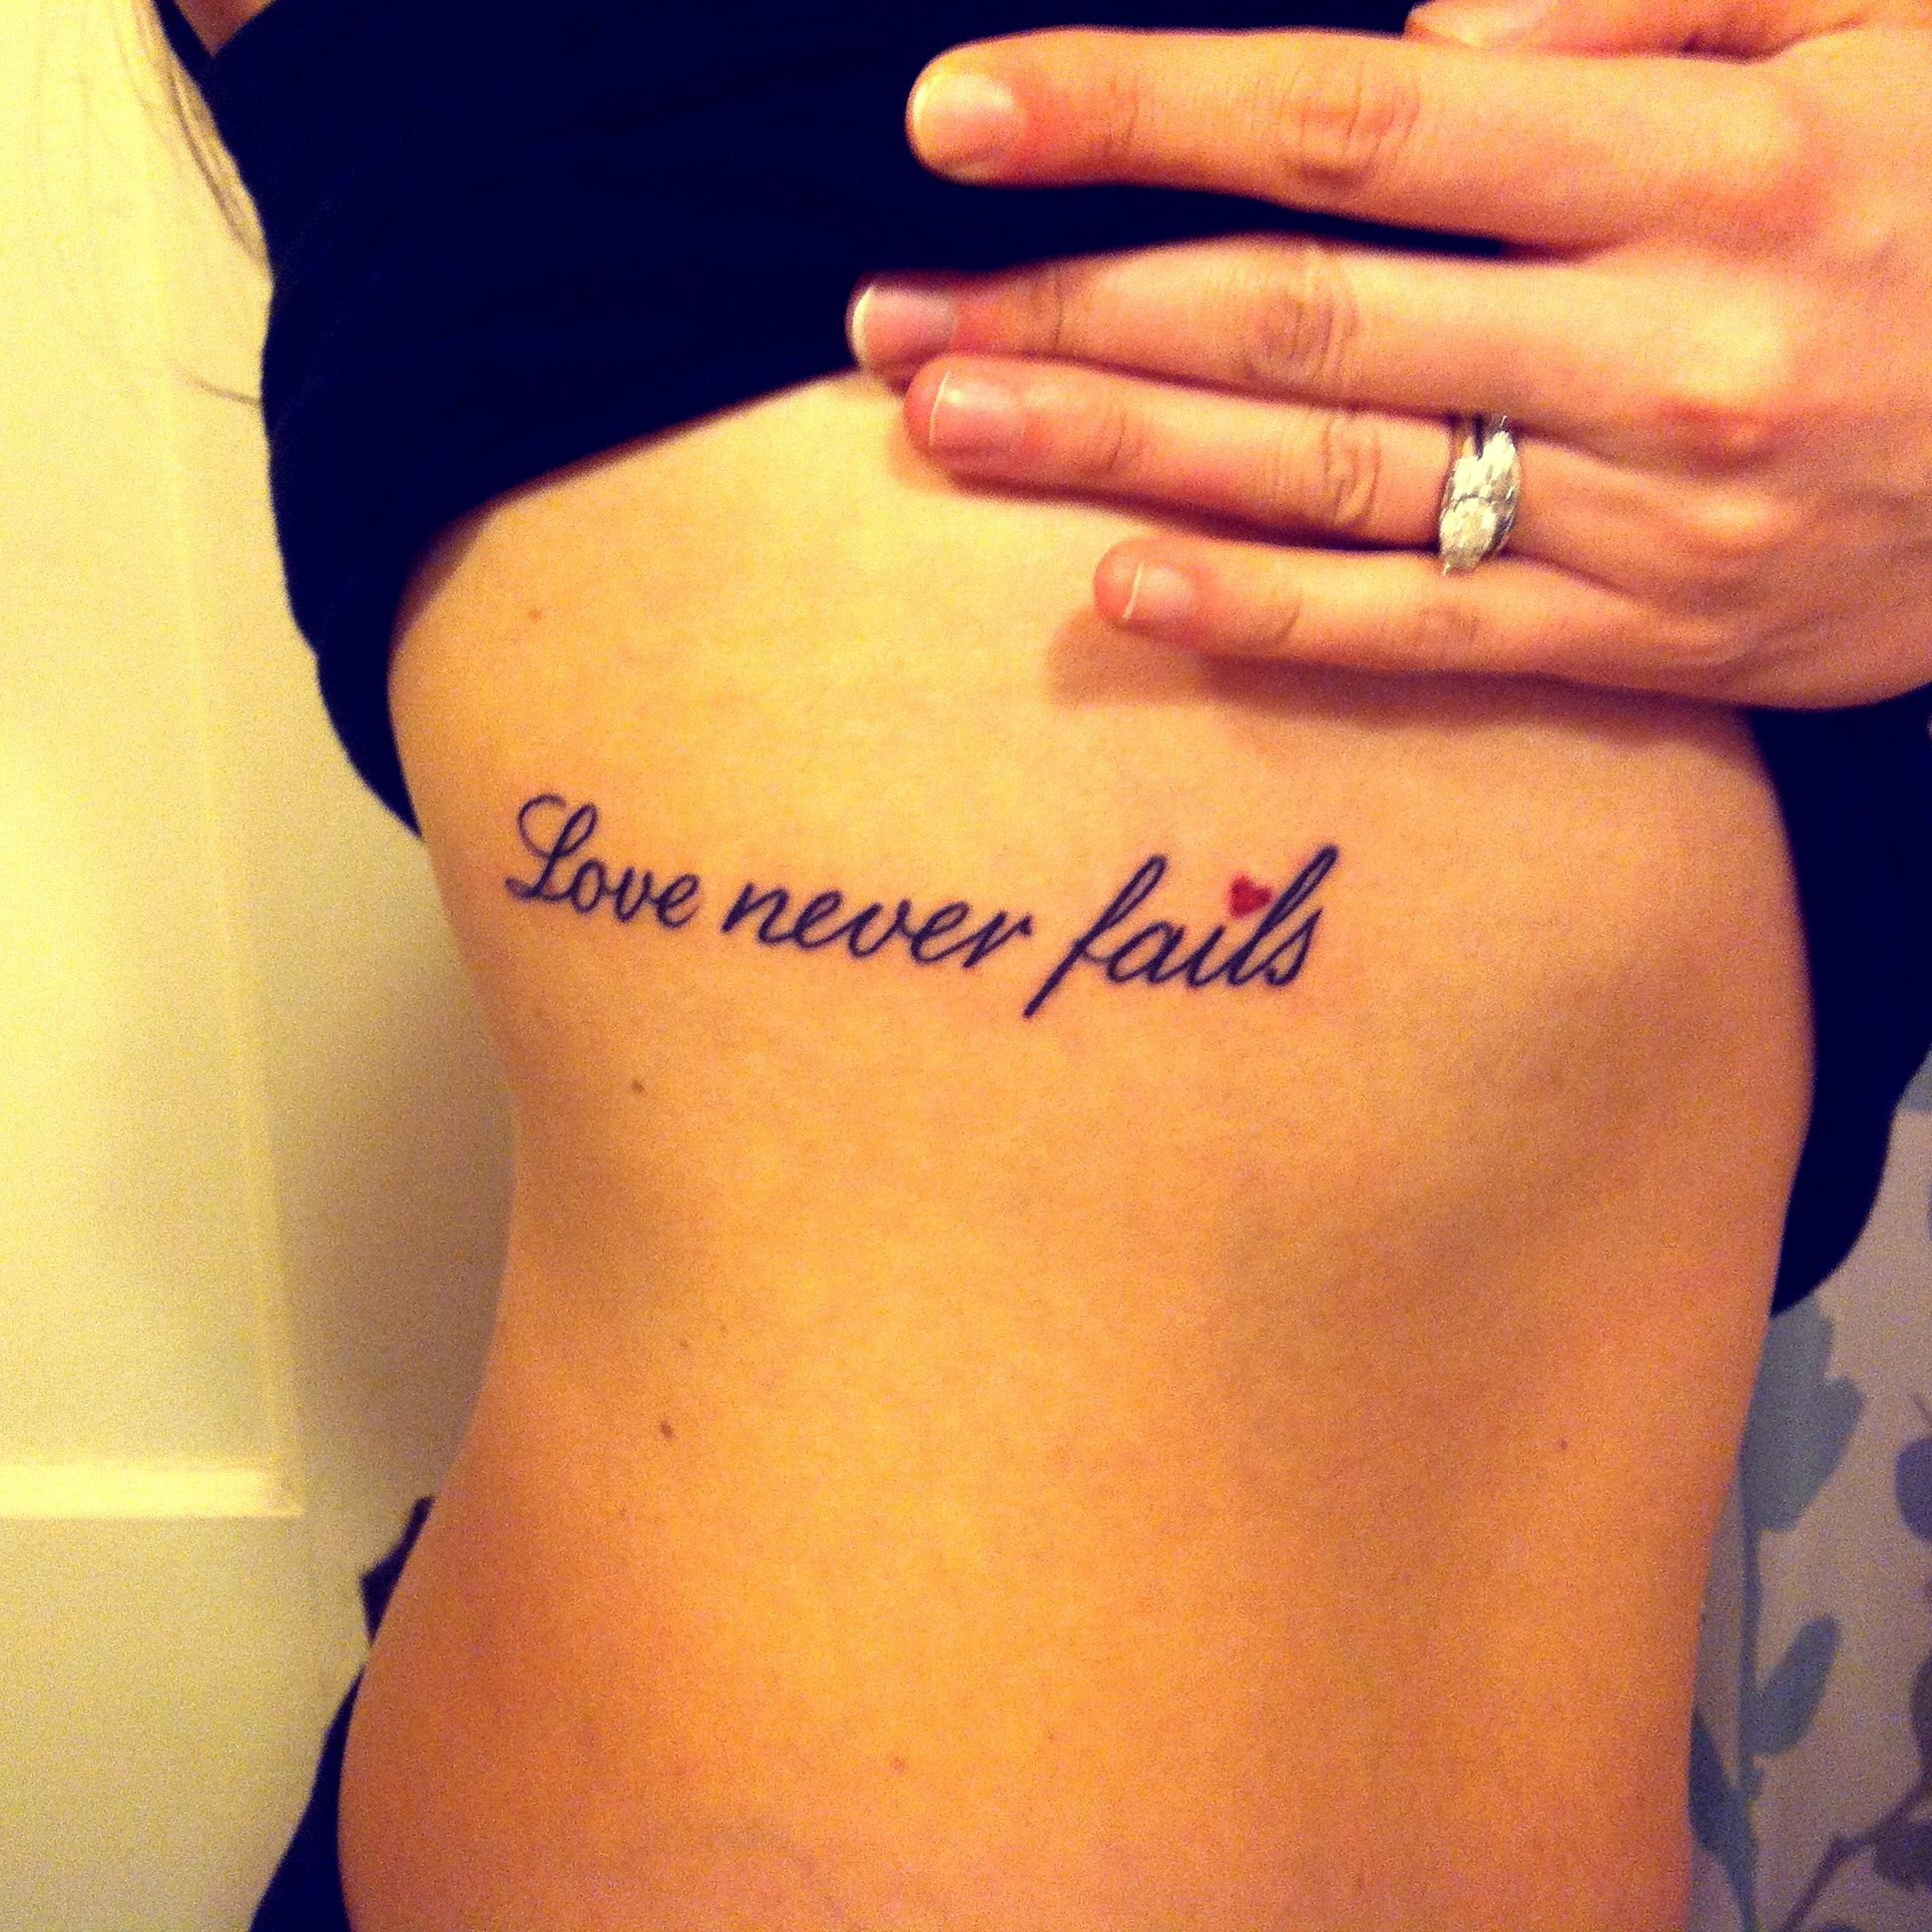 My First Tattoo It S From 1 Corinthians 13 8 And Also A Ideas And Designs